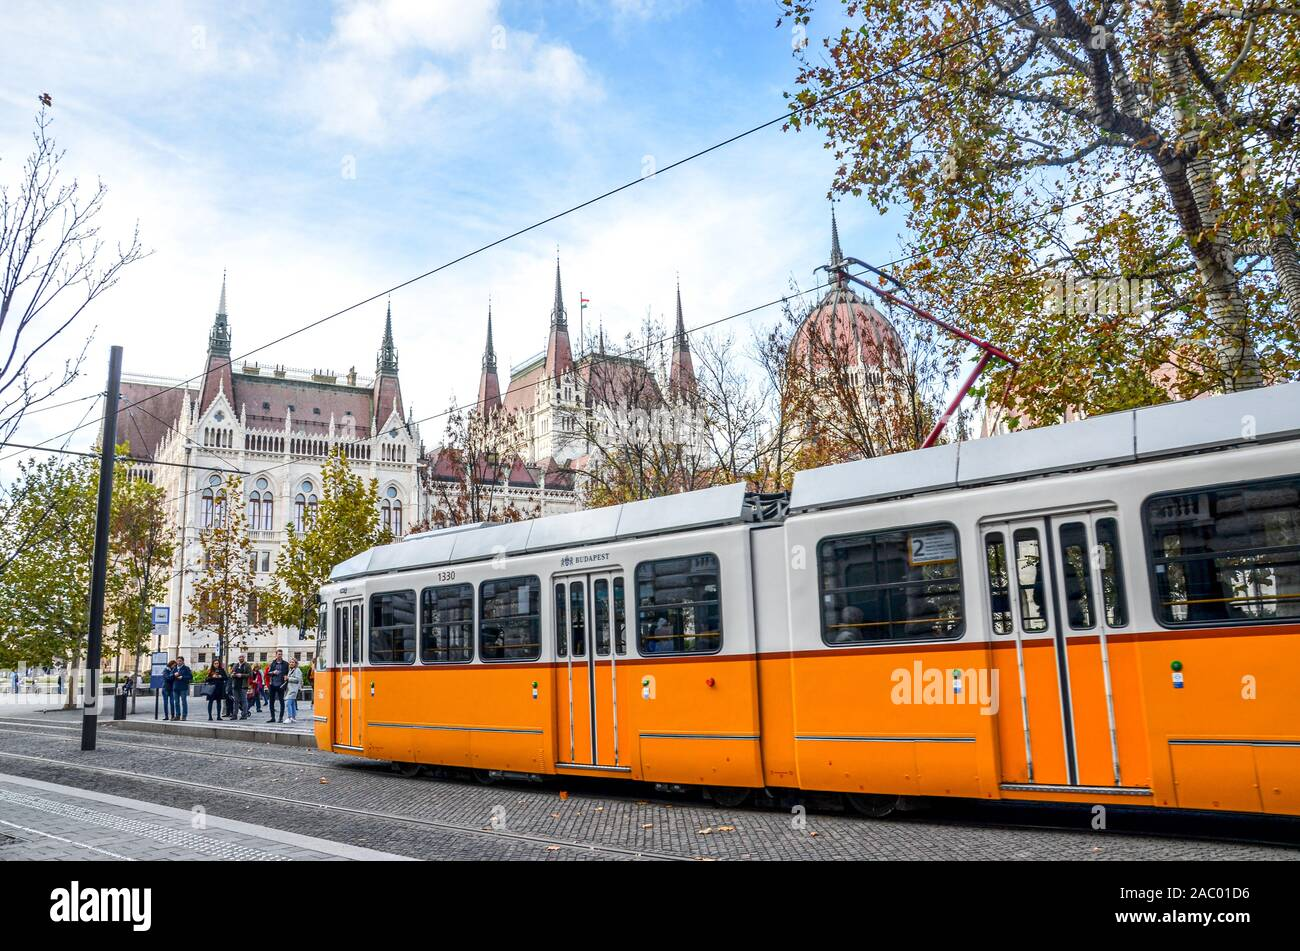 Budapest, Hungary - Nov 6, 2019: Public yellow tram riding in front of the Hungarian Parliament building. Hungarian capital city public transport. City transportation. Tourist attraction. Stock Photo